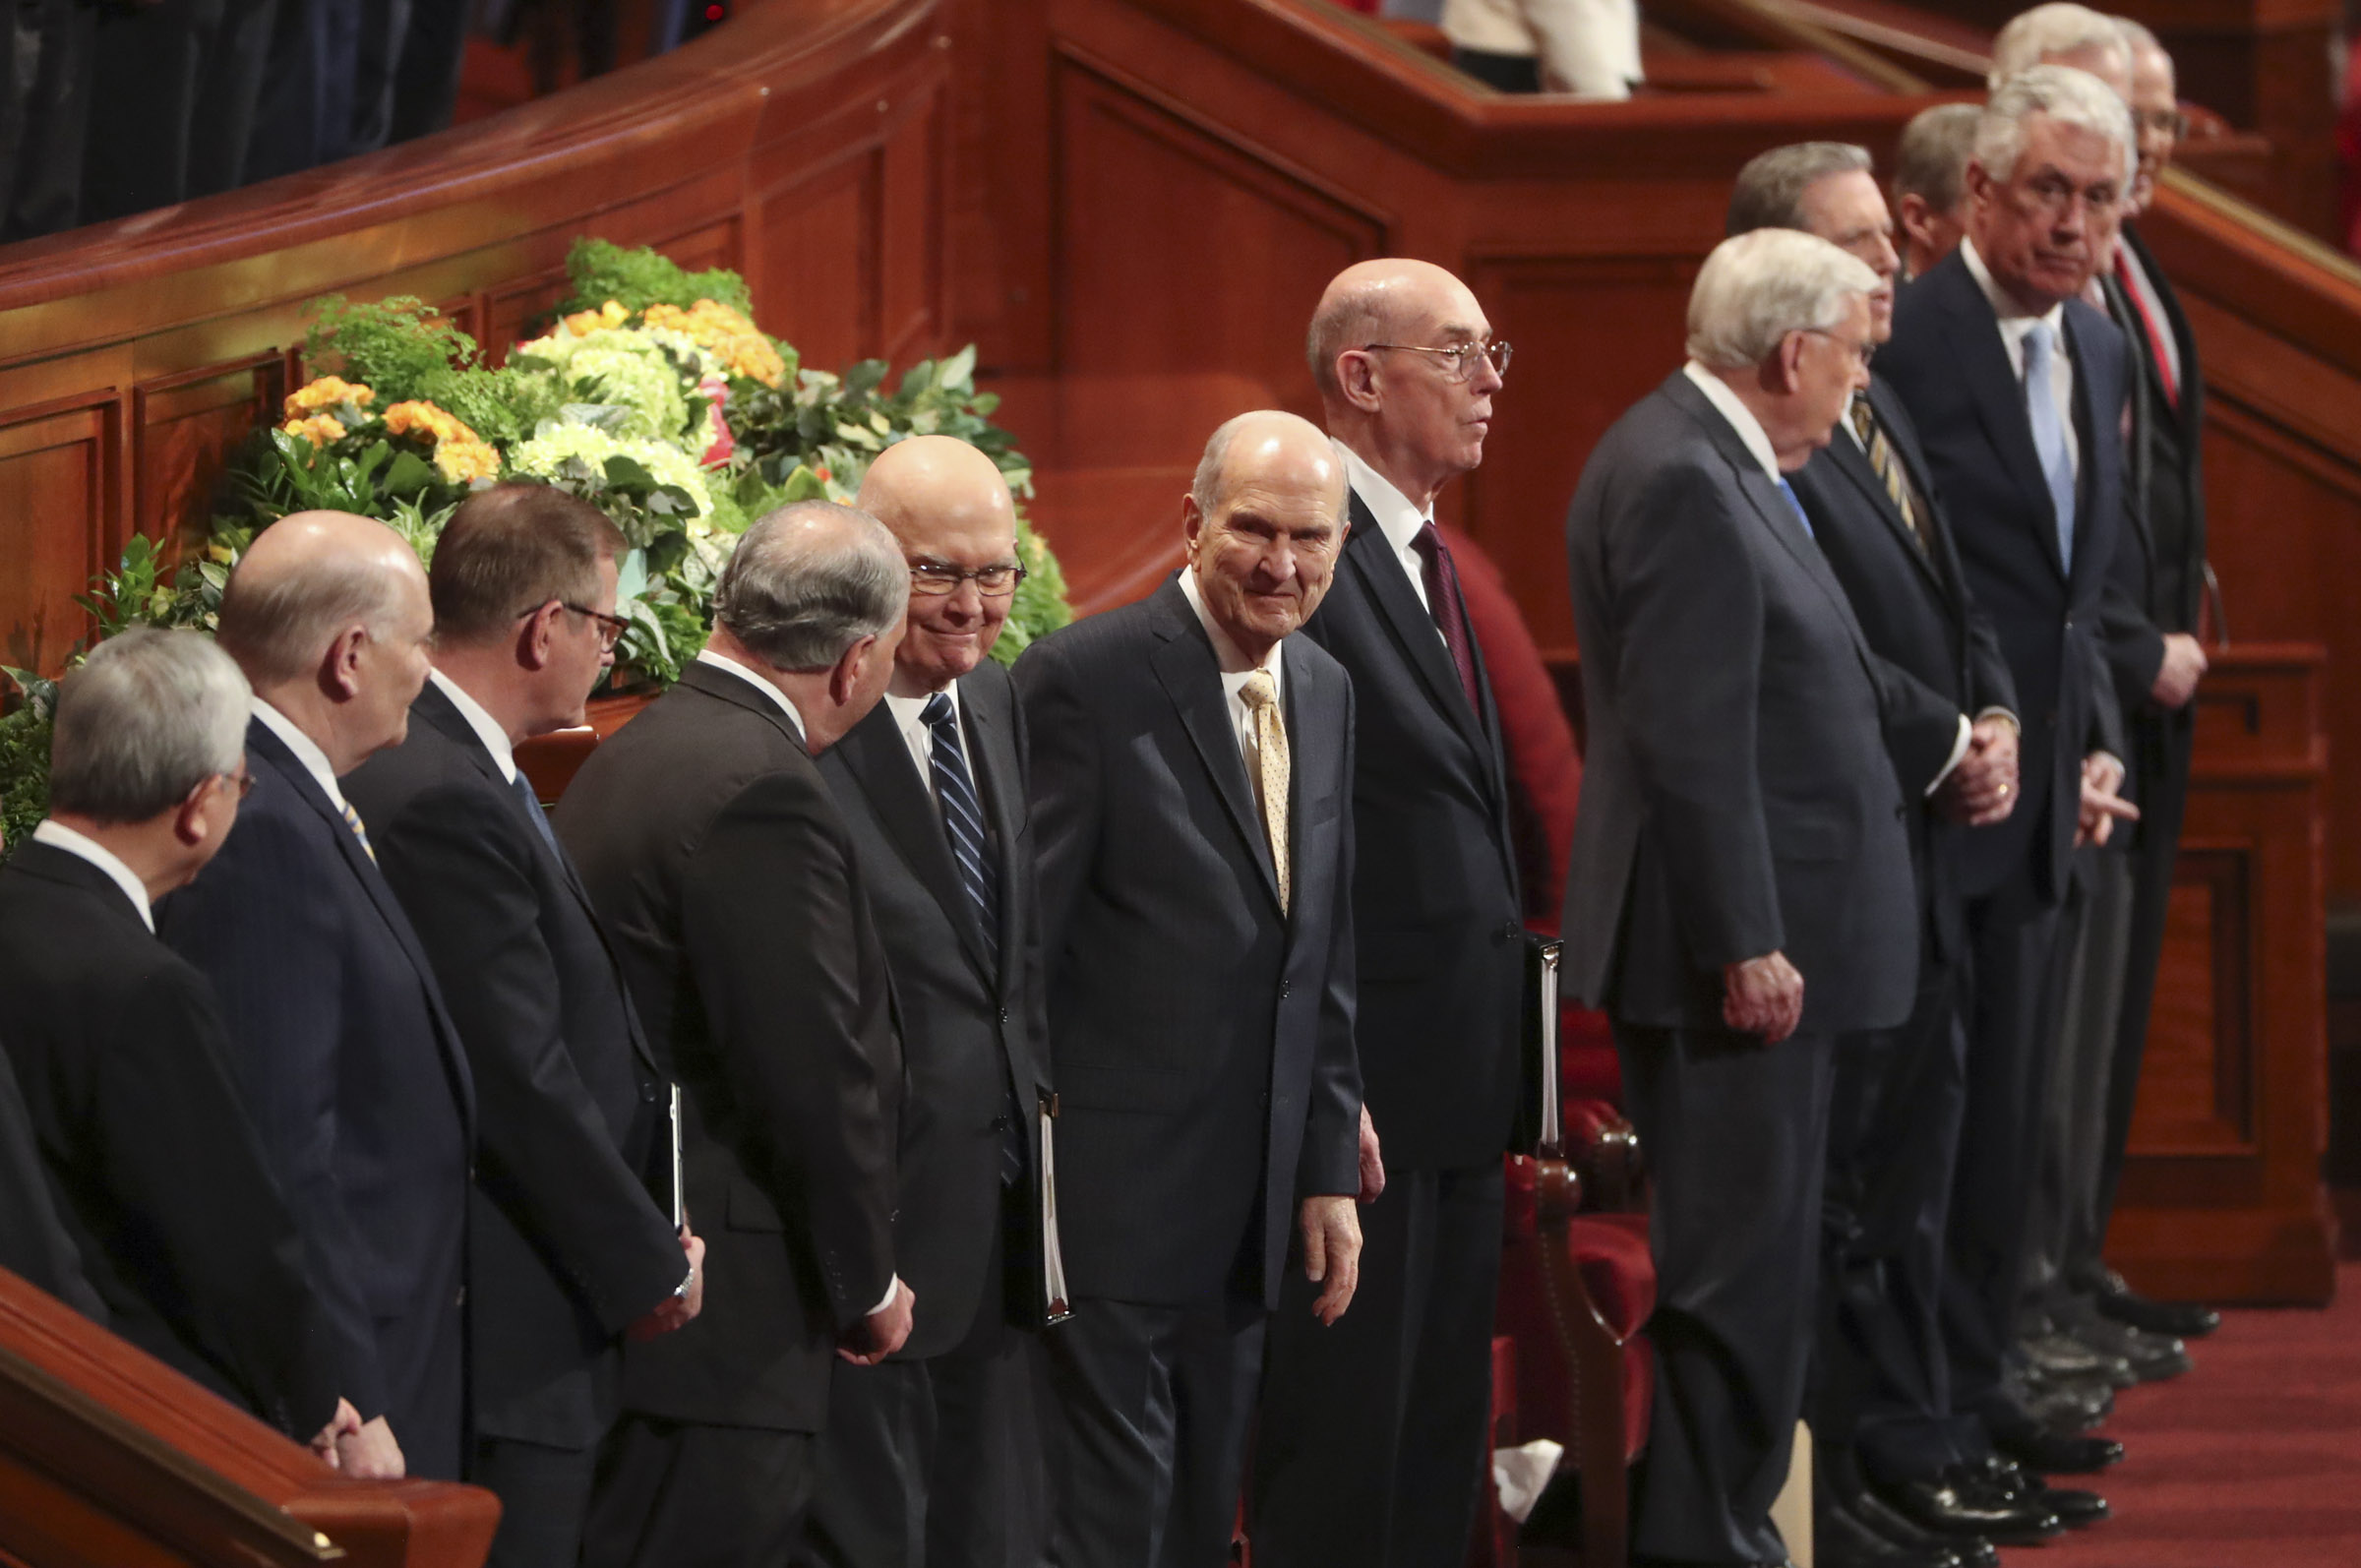 President Russell M. Nelson of The Church of Jesus Christ of Latter-day Saints, center, his counselors and members of the Quorum of the Twelve Apostles stand before the afternoon session of 189th Annual General Conference at the Conference Center in Salt Lake City on Saturday, April 6, 2019.